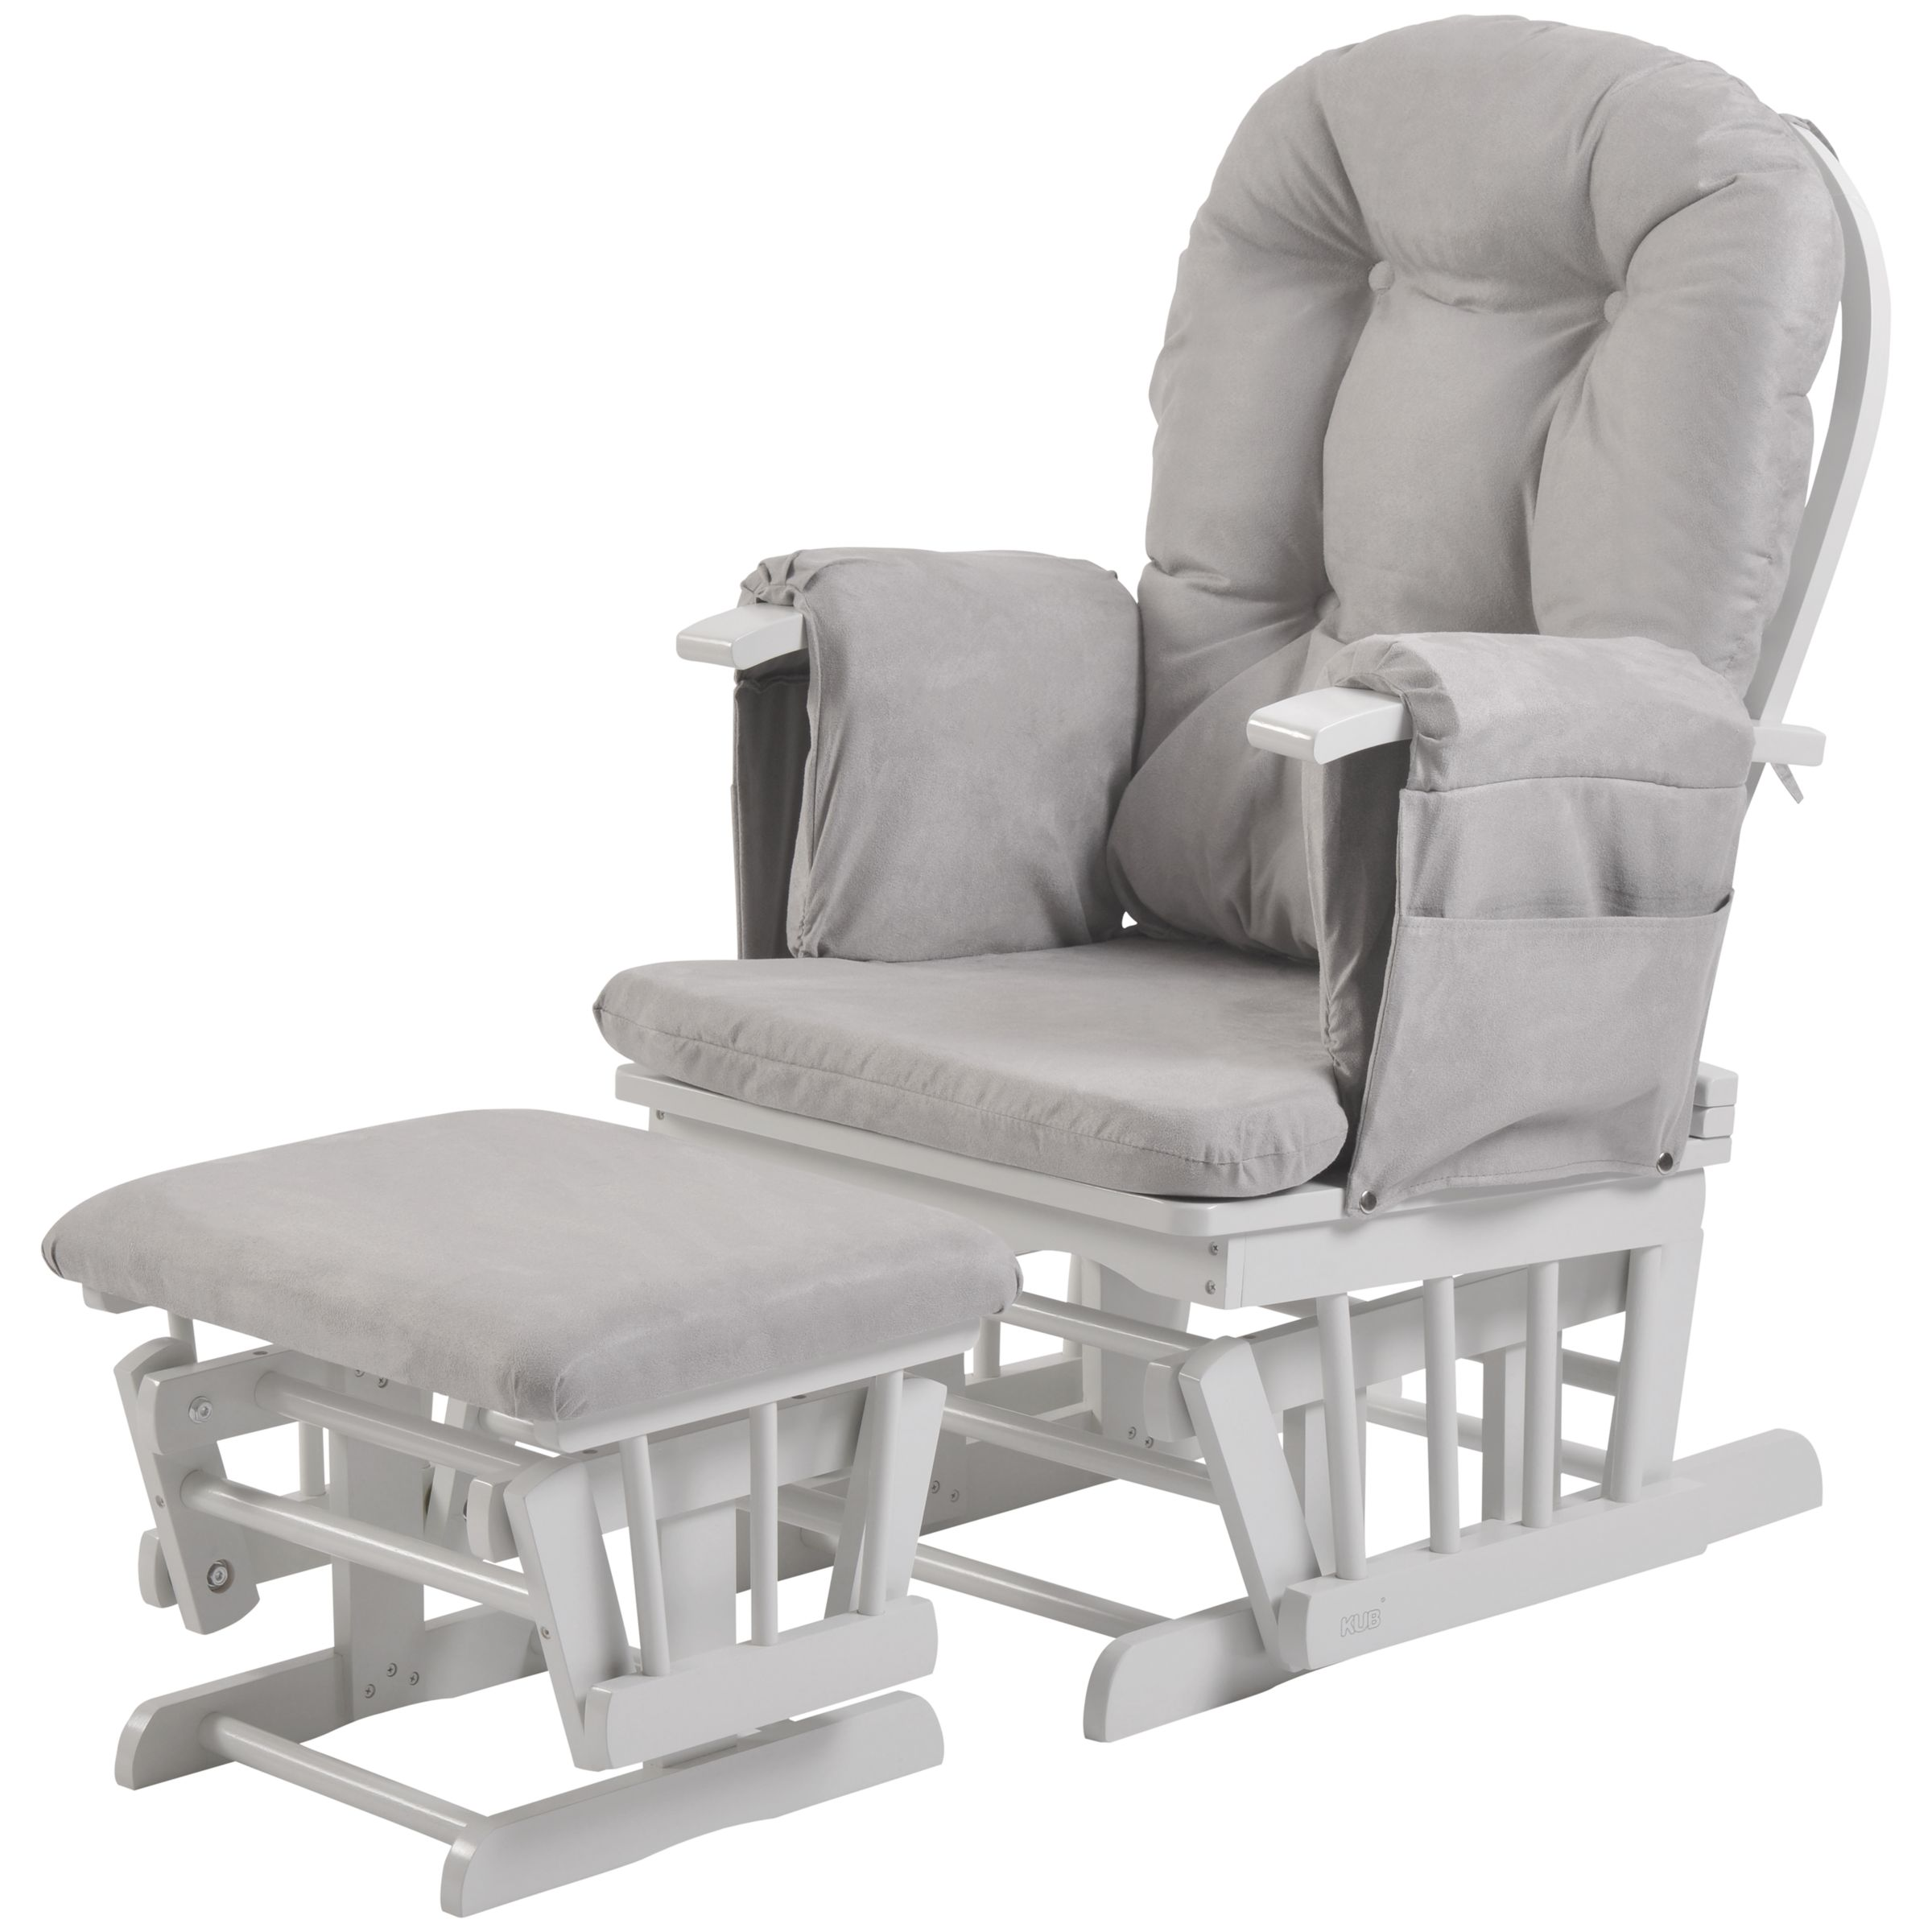 Baby Nursing Chair Kub Haywood Reclining Glider Nursing Chair And Footstool